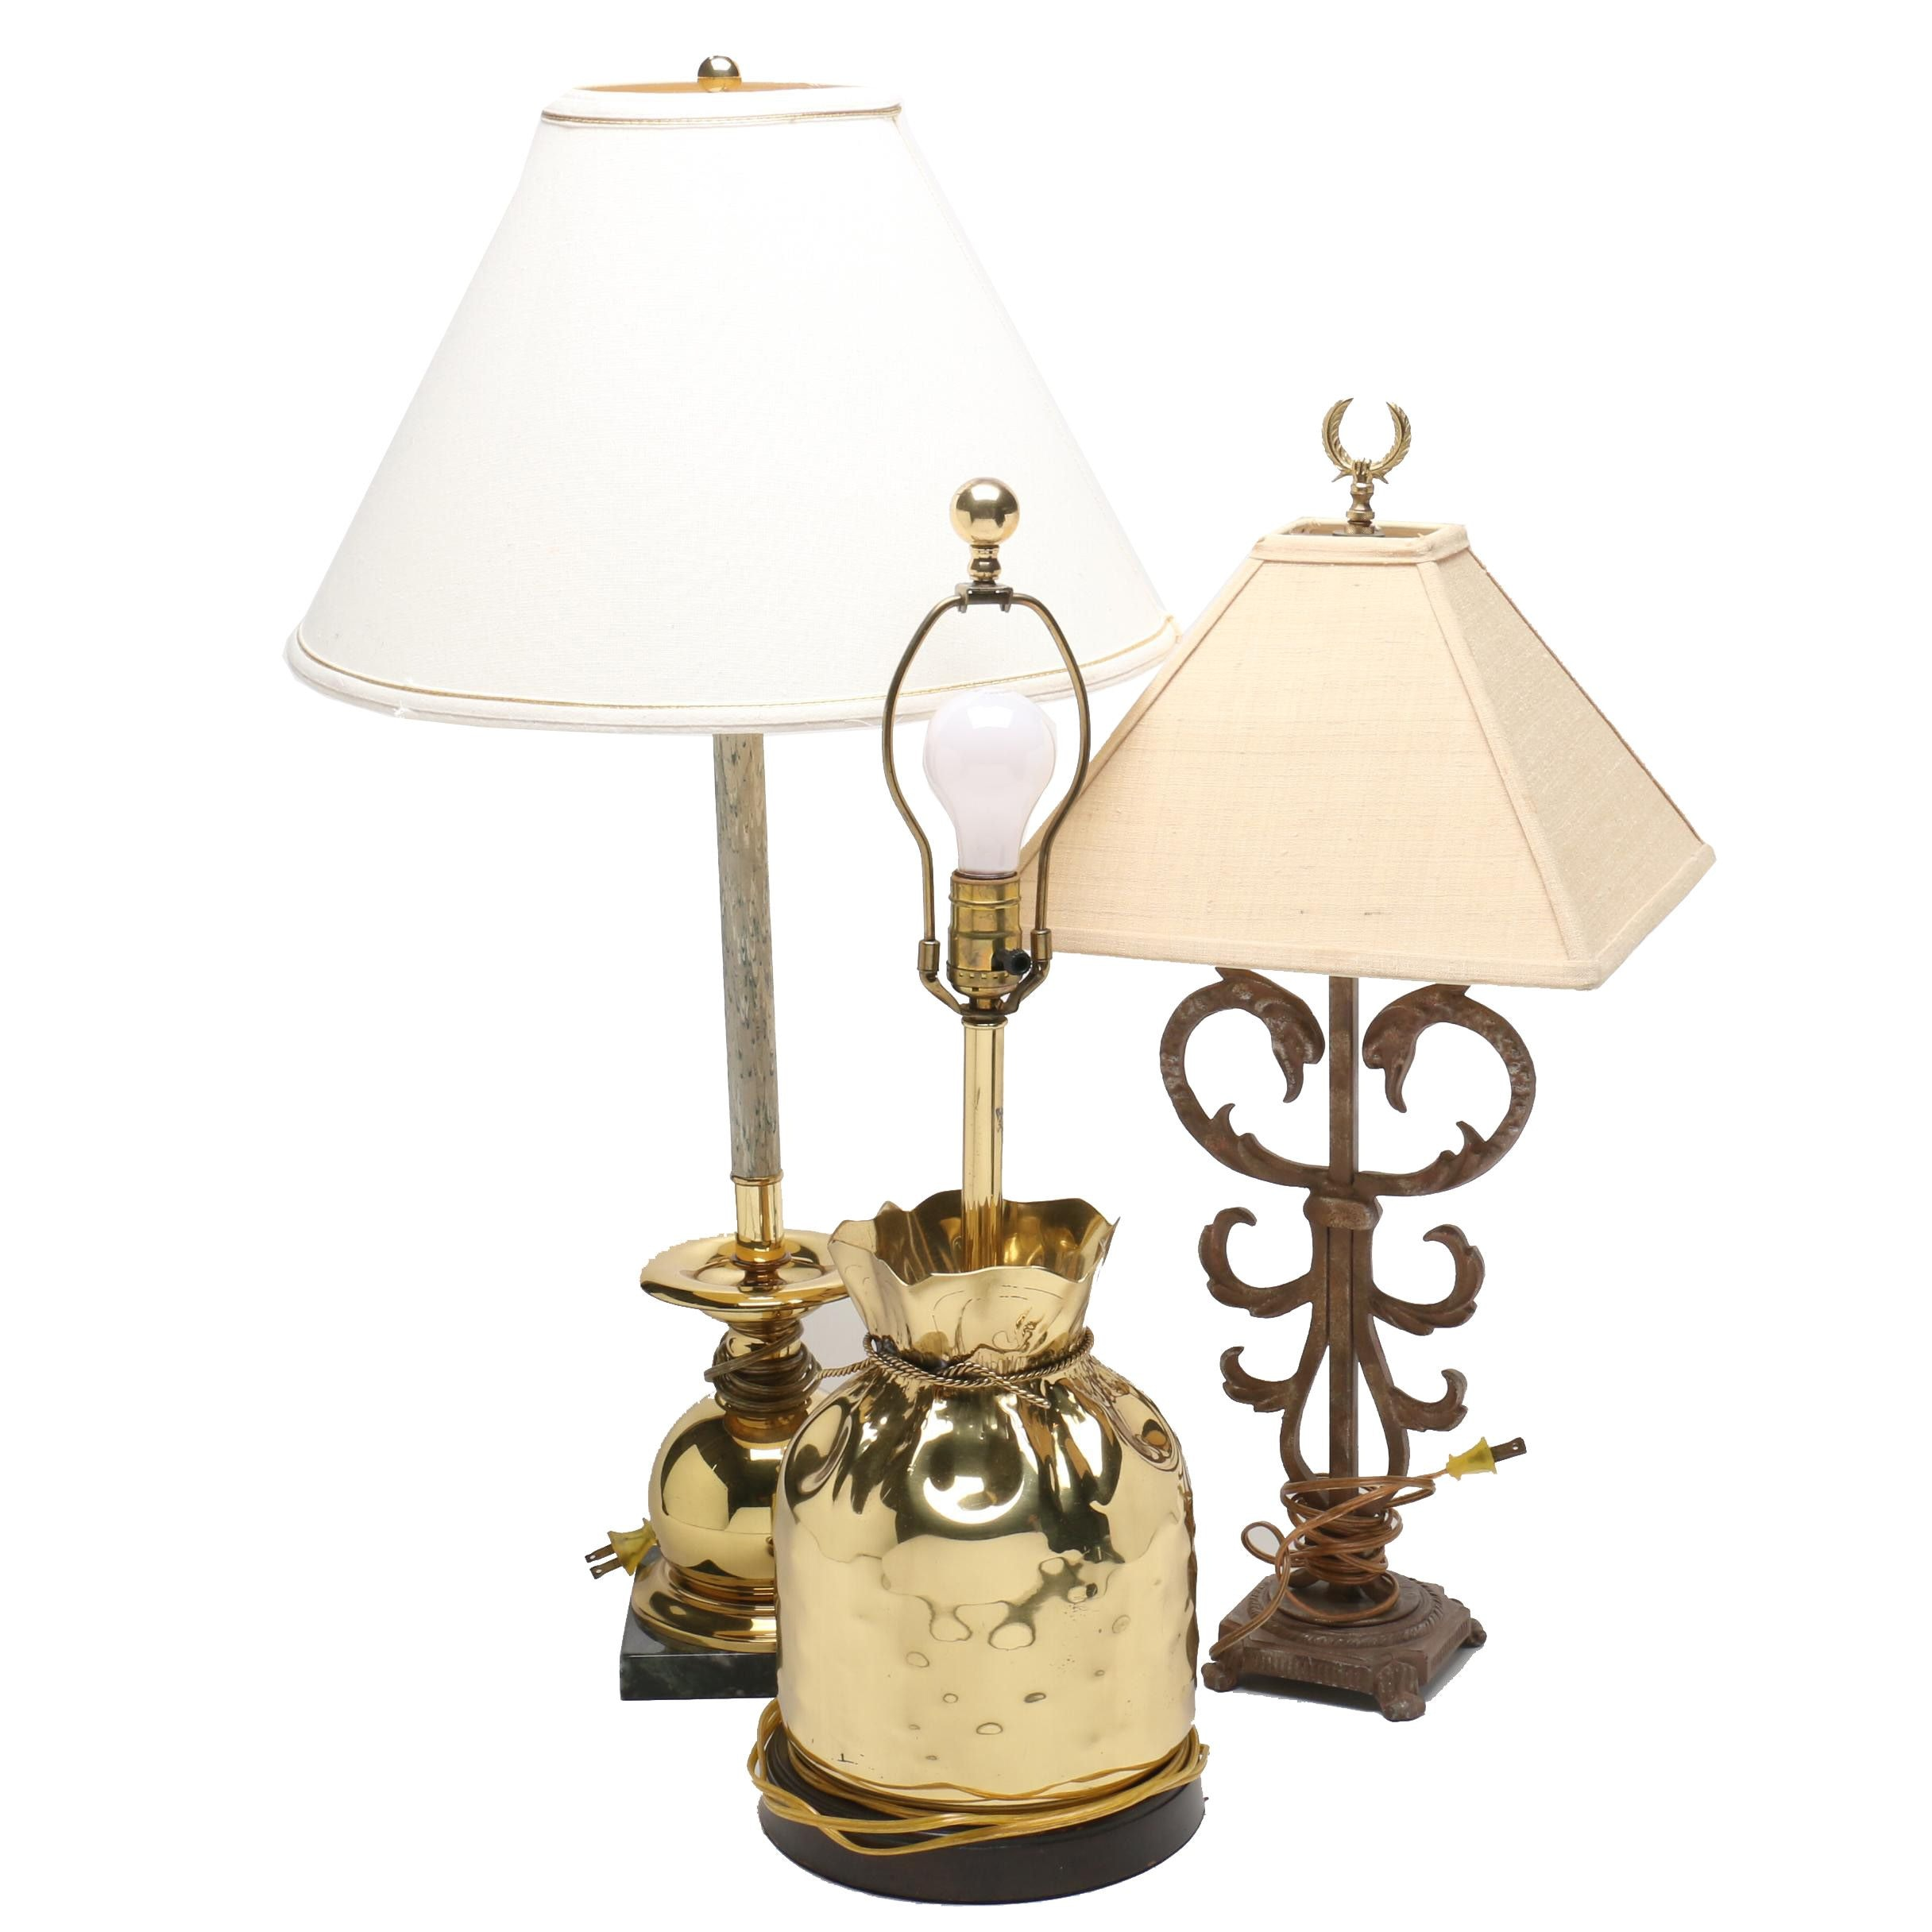 Brass and Wrought Iron Table Lamps